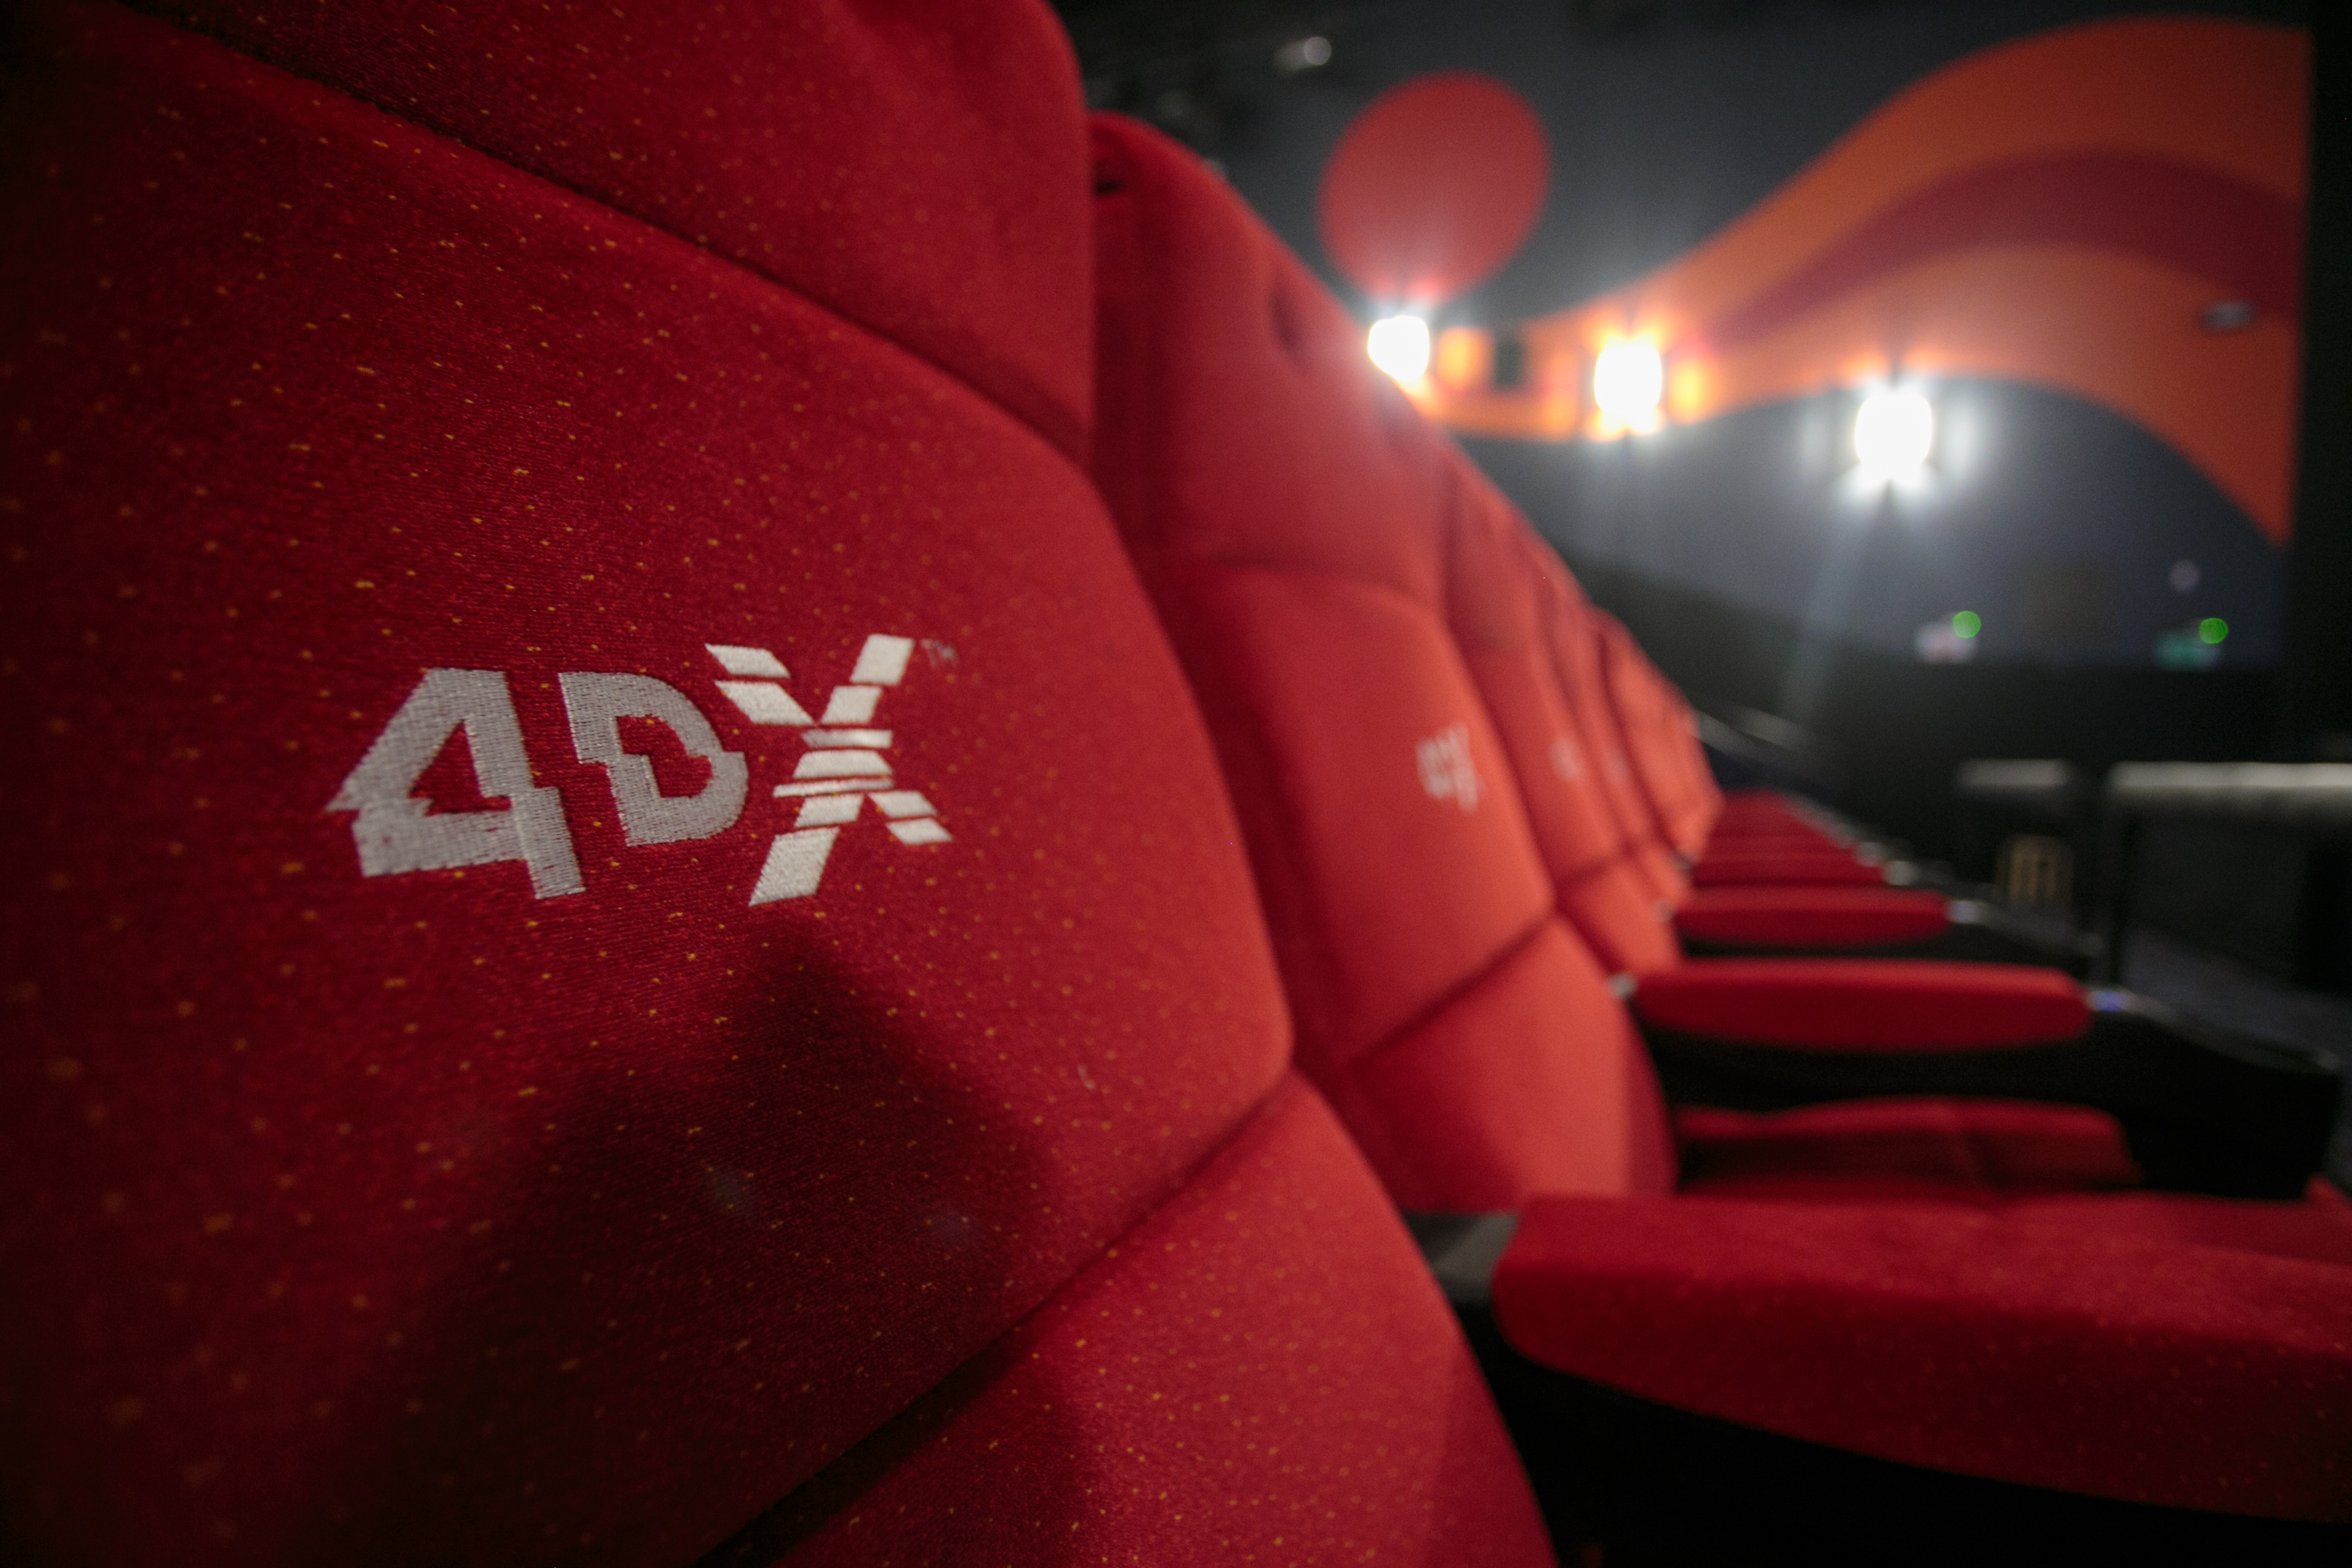 Sala 4dx 2 for Sala 4dx opiniones